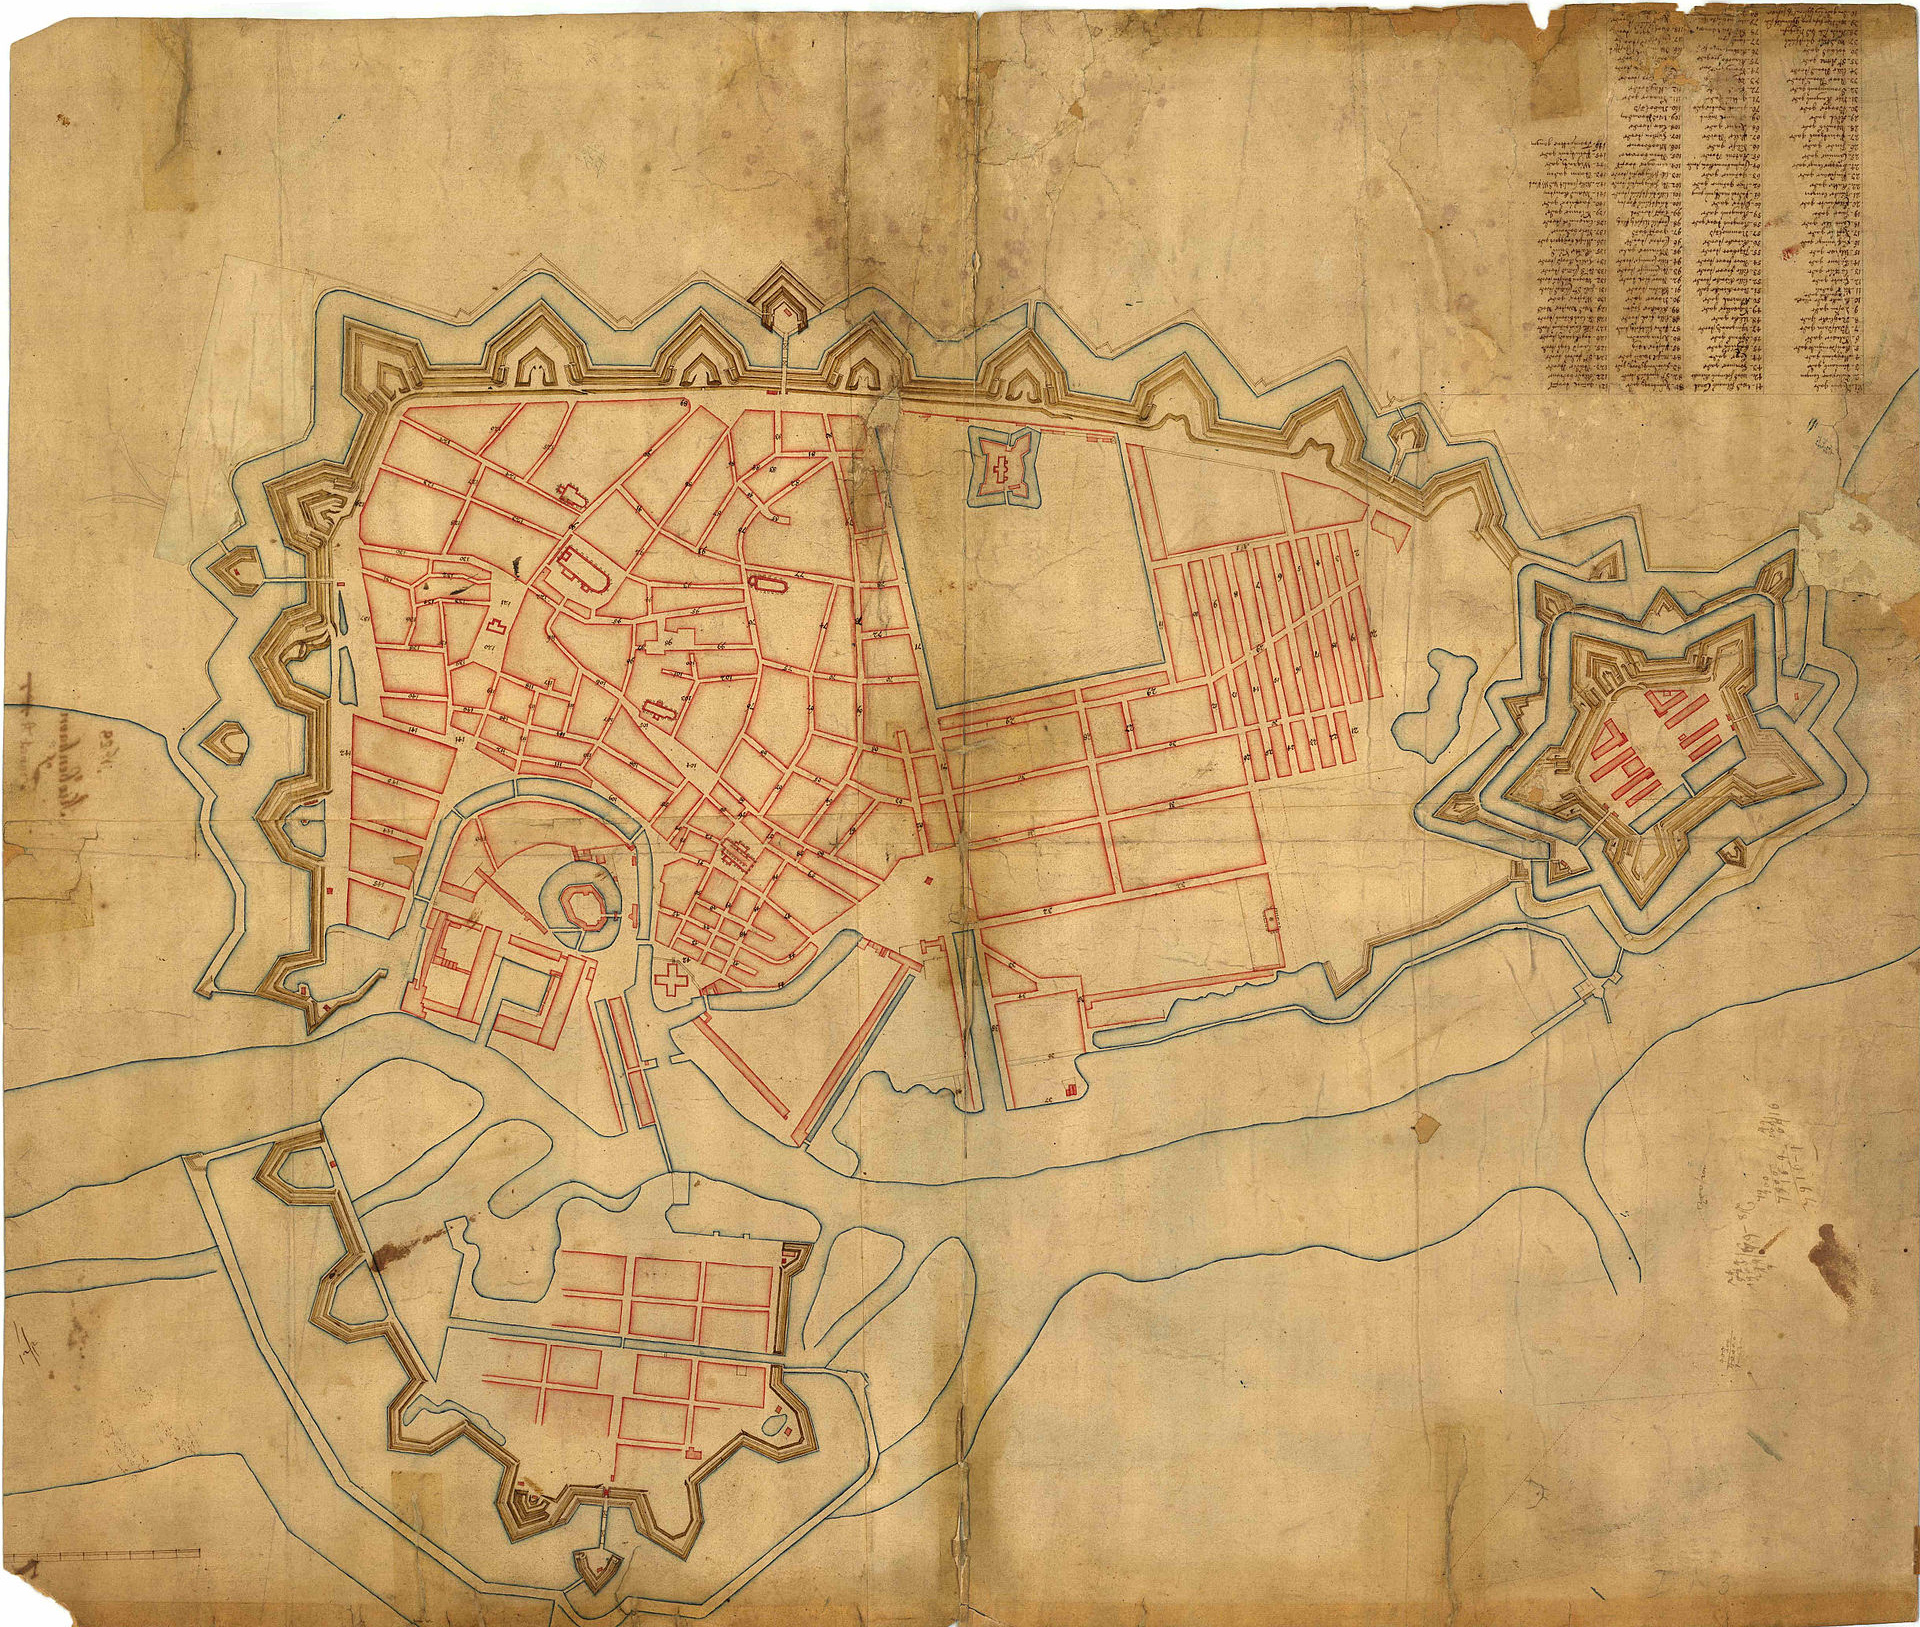 A map of 1685. Here ithas been turned deliberately so that it is orientated to compare directly with the view of the city. The castle of Christiansborg is relatively obvious - centre left.The new Borsen has a canal on both long sides and runs down to a bridge over the harbour.Nyhavn is towards the centre of the map with the rope works and ship yard to its left. Rosenborg with its garden is here at the top of the map within newly extendedembankmentsand Kastellet begun in 1662 is shown onthe far right of the map with the Nyboder houses as a regular grid of streetsbetween. Christianshavn is the fortified settlement on the opposite side of the harbour to the Castle and the city. This map dates from before the new dockyards of Holmen were constructed.